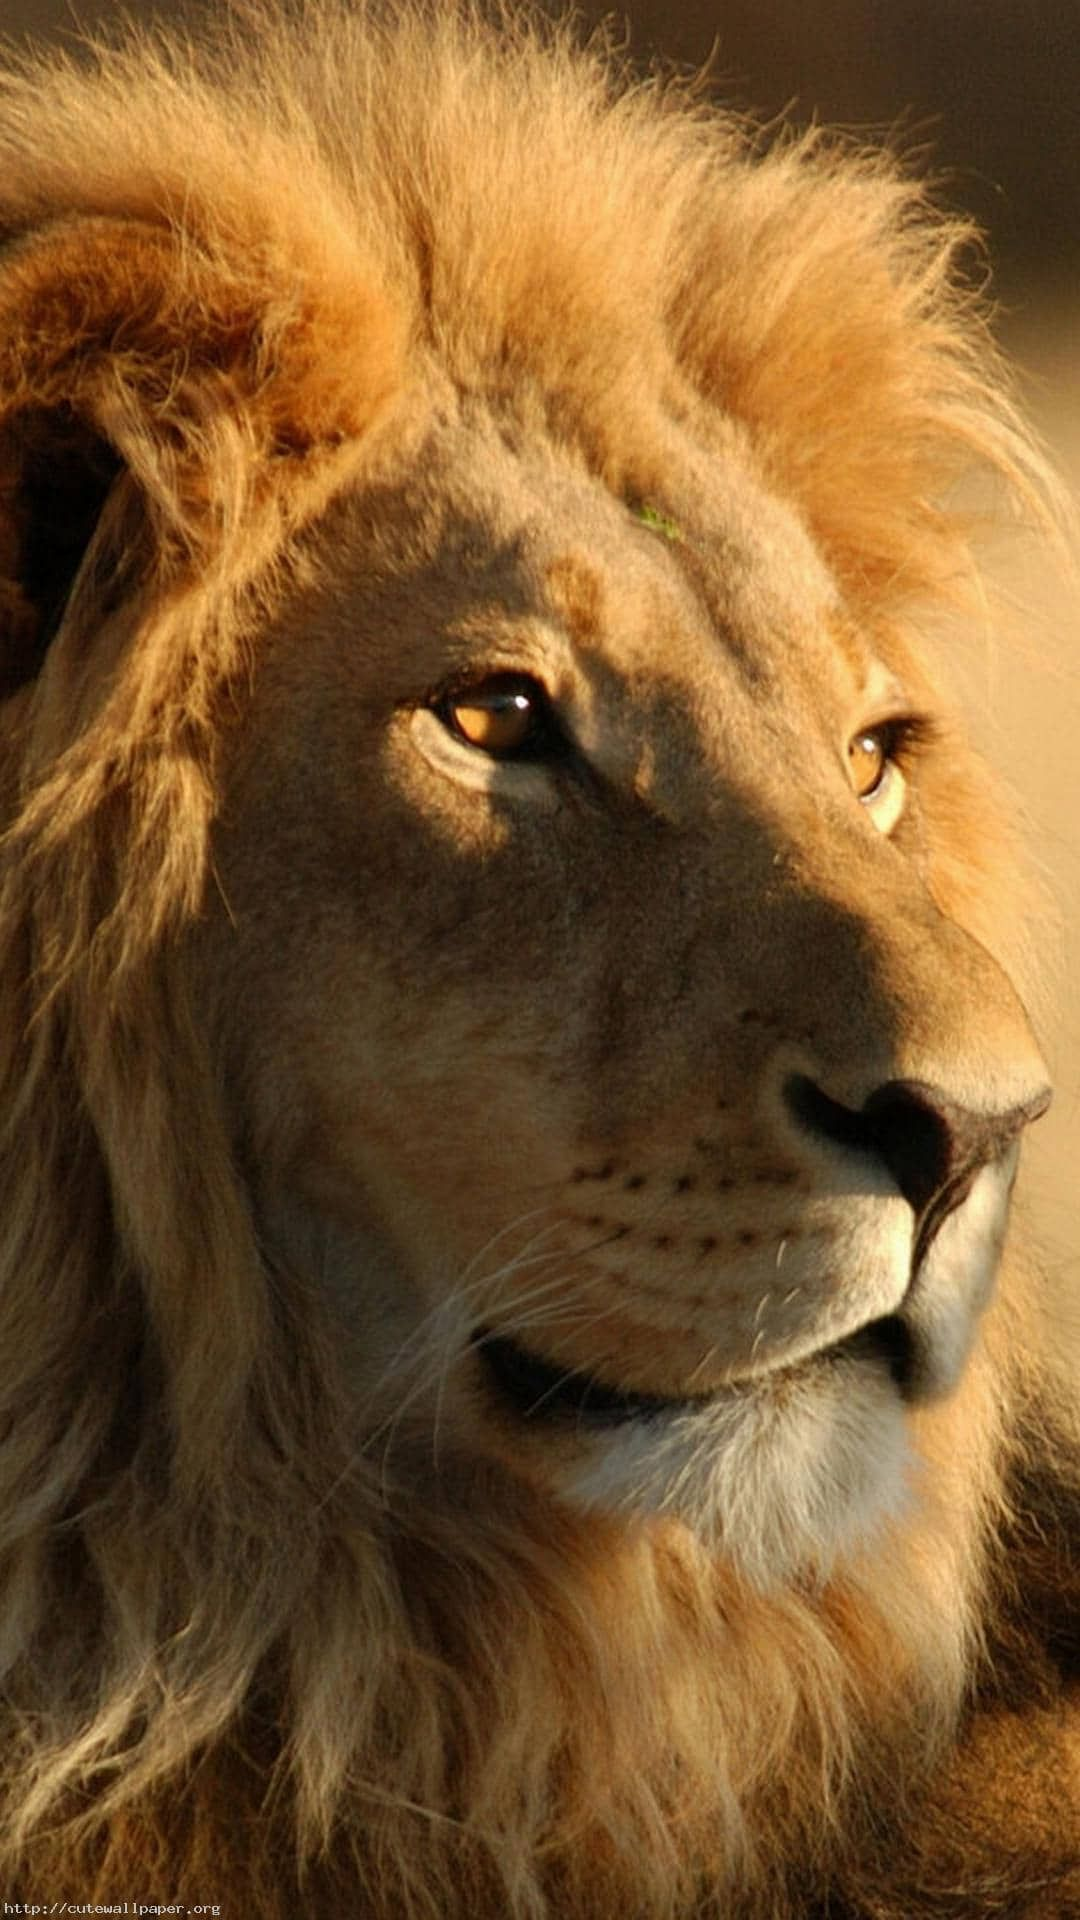 Lion hd wallpaper for android